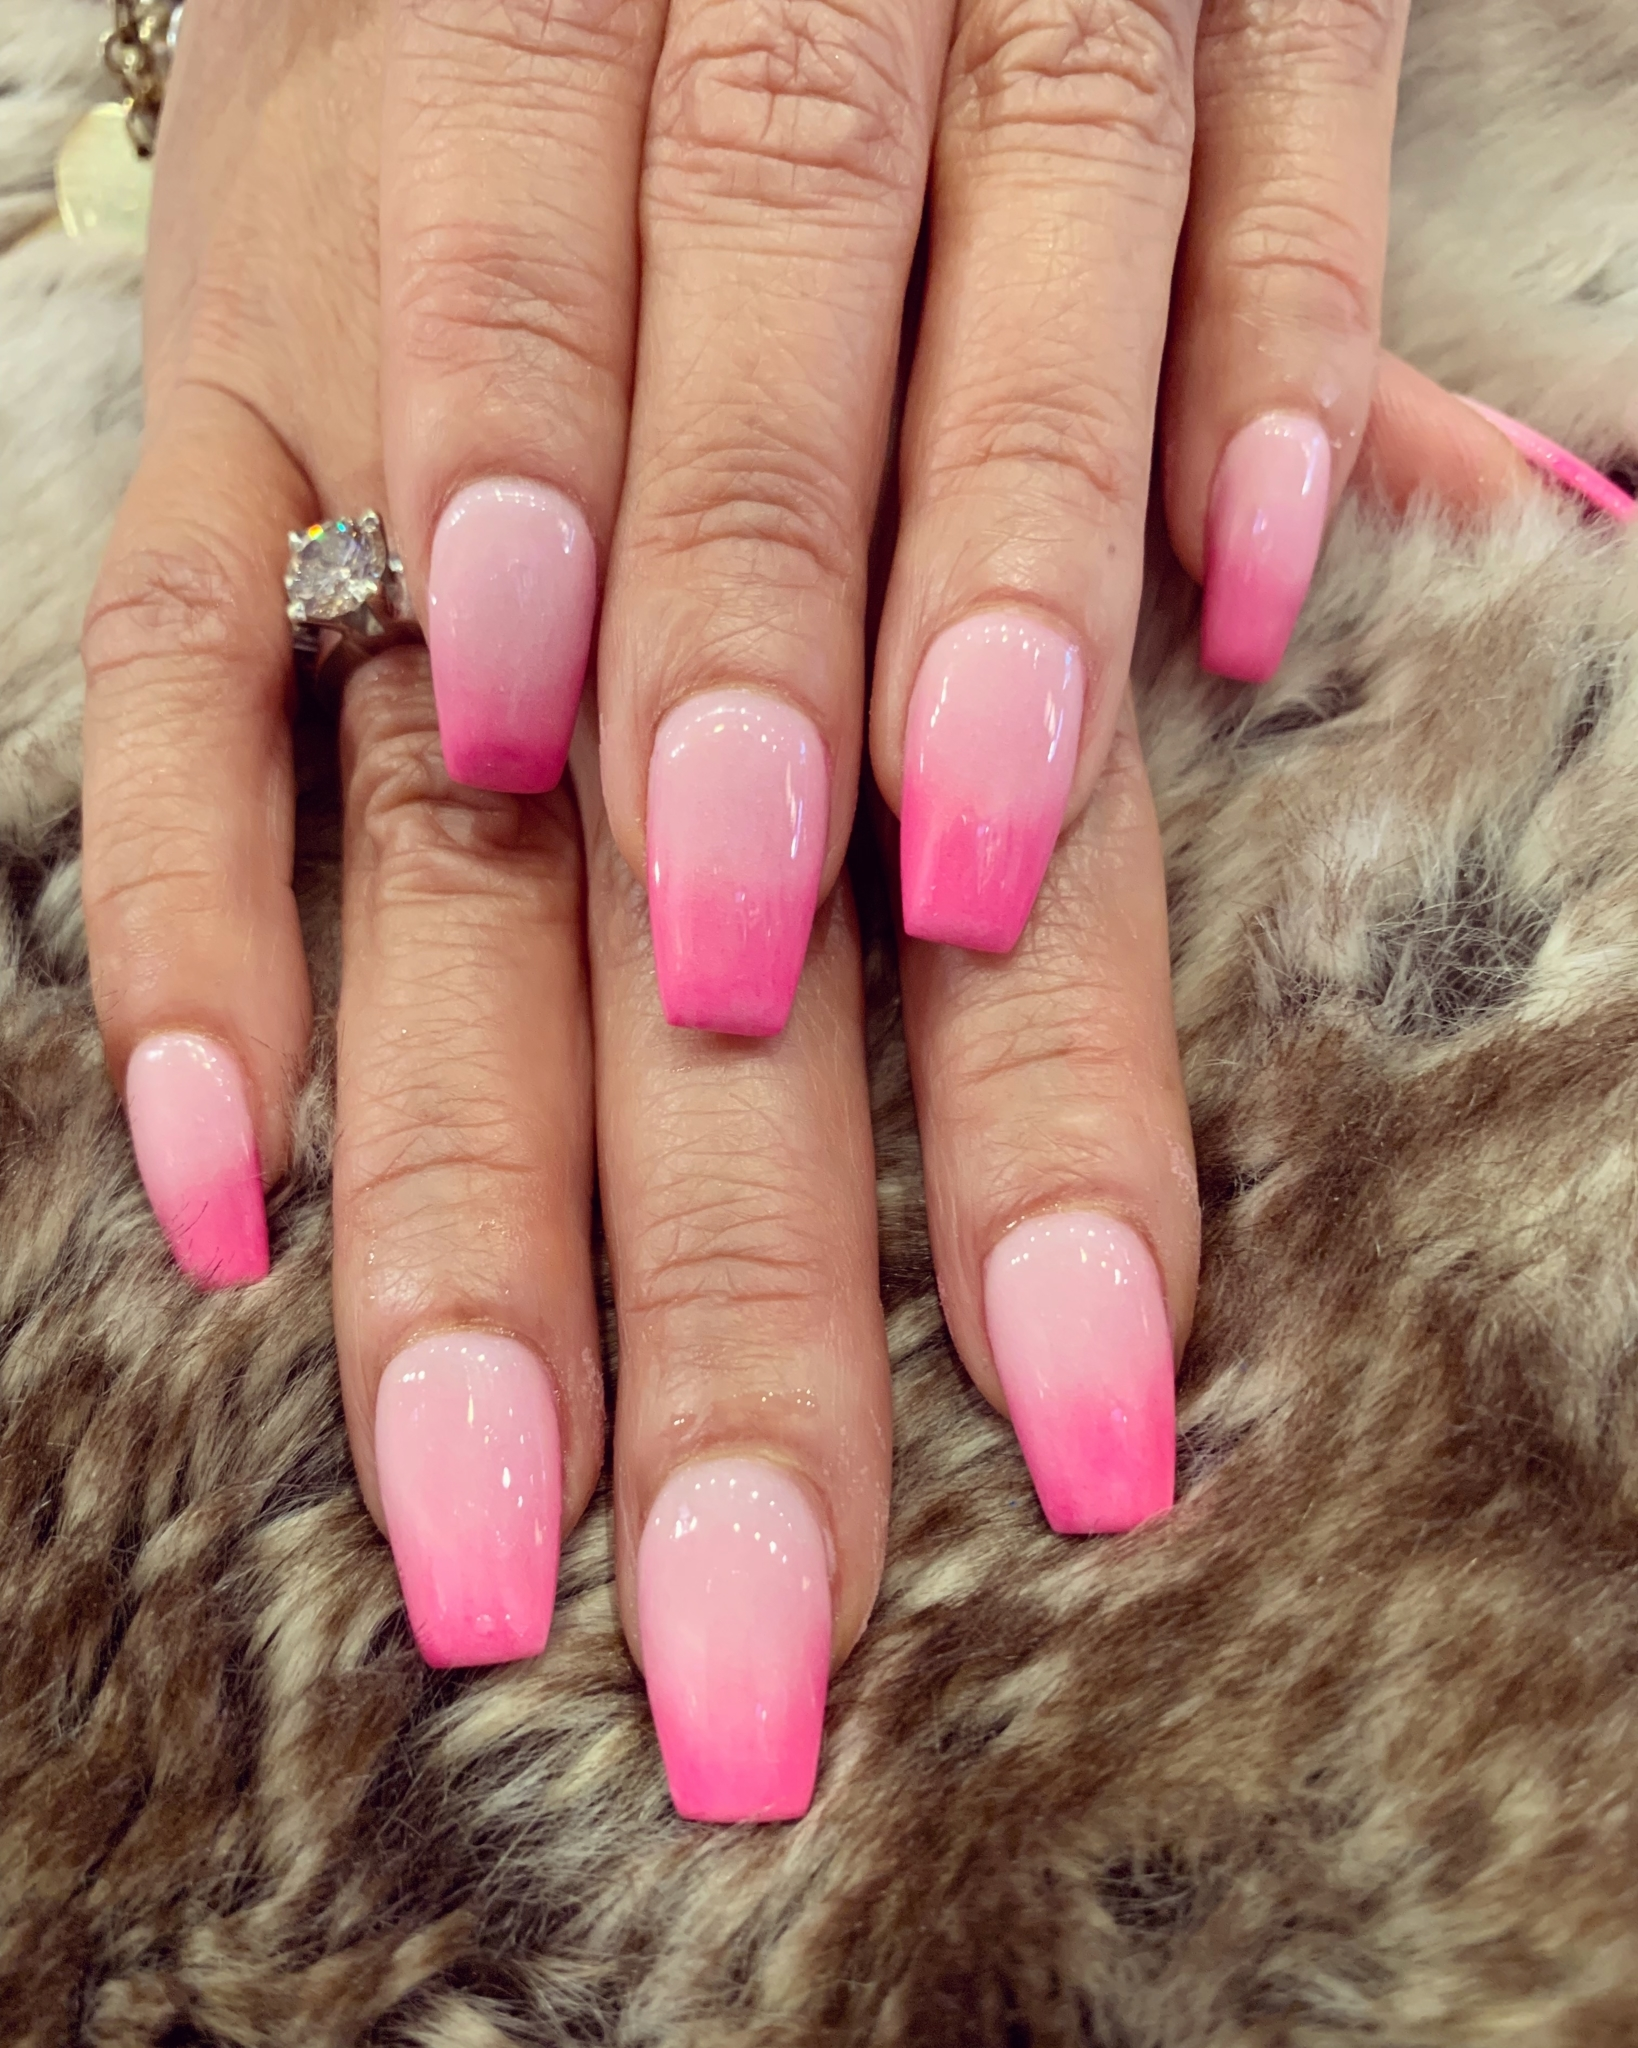 Dn Nails And Spa 1556 Merivale Rd Nepean On